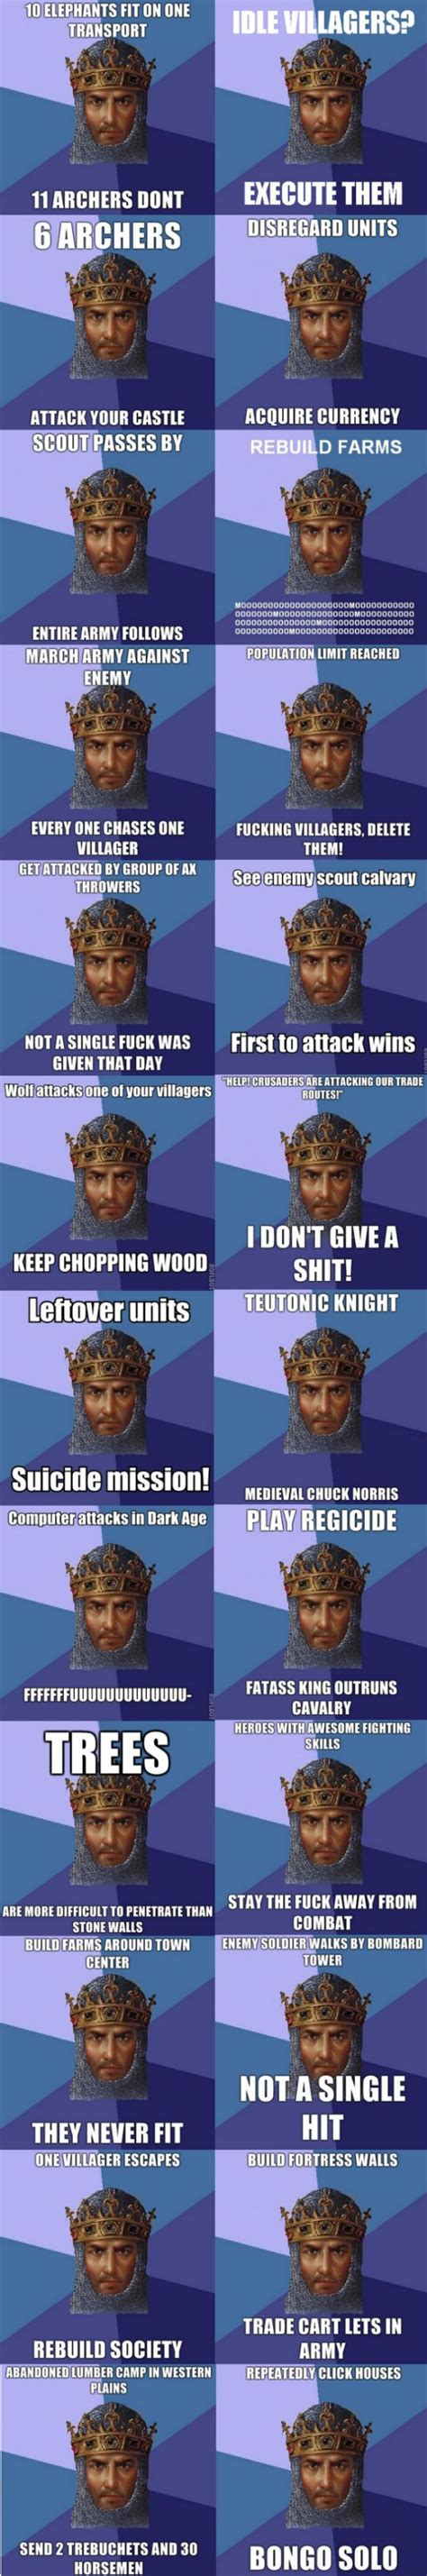 Age Of Empires Meme - age of empires logic meme weknowmemes memes